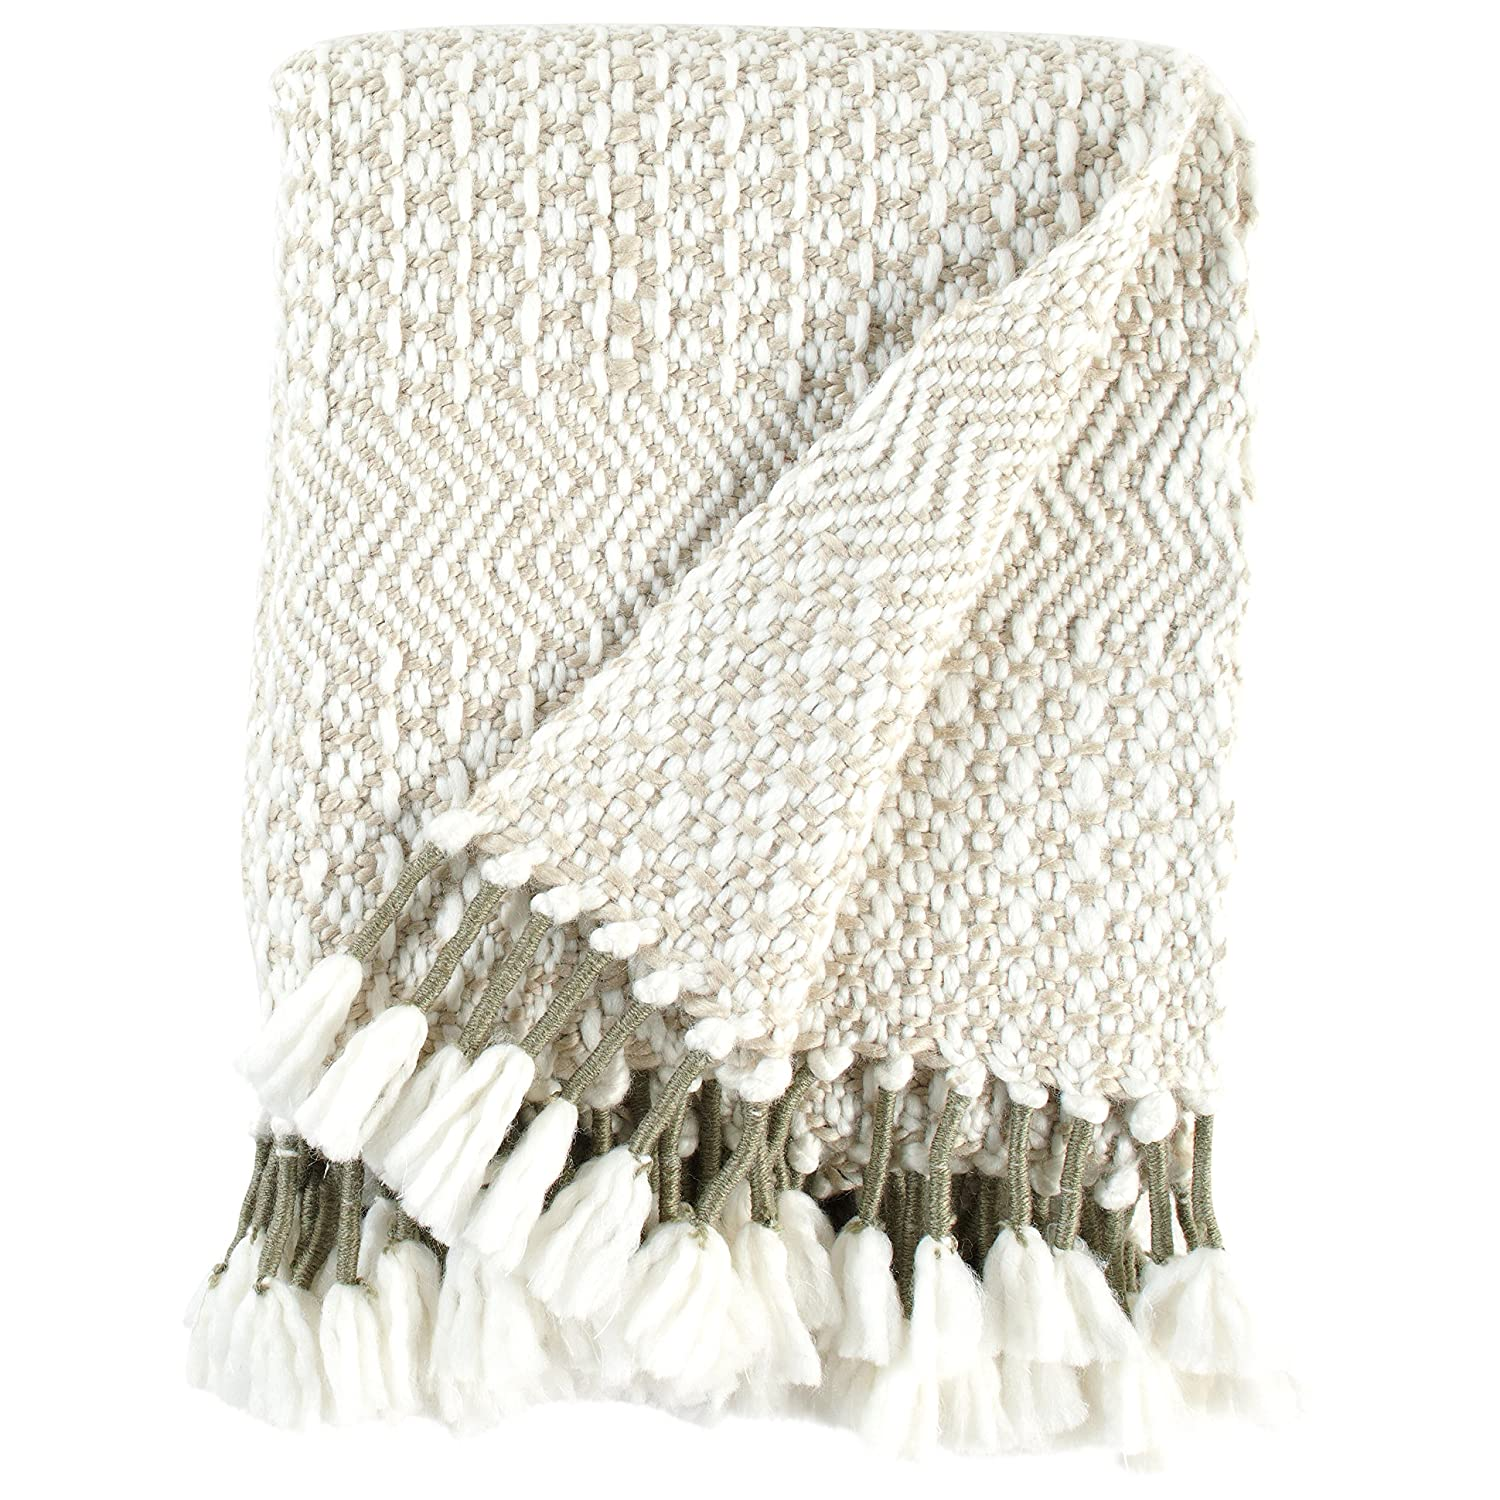 Rivet Modern Hand-Woven Stripe Fringe Throw Blanket, 50